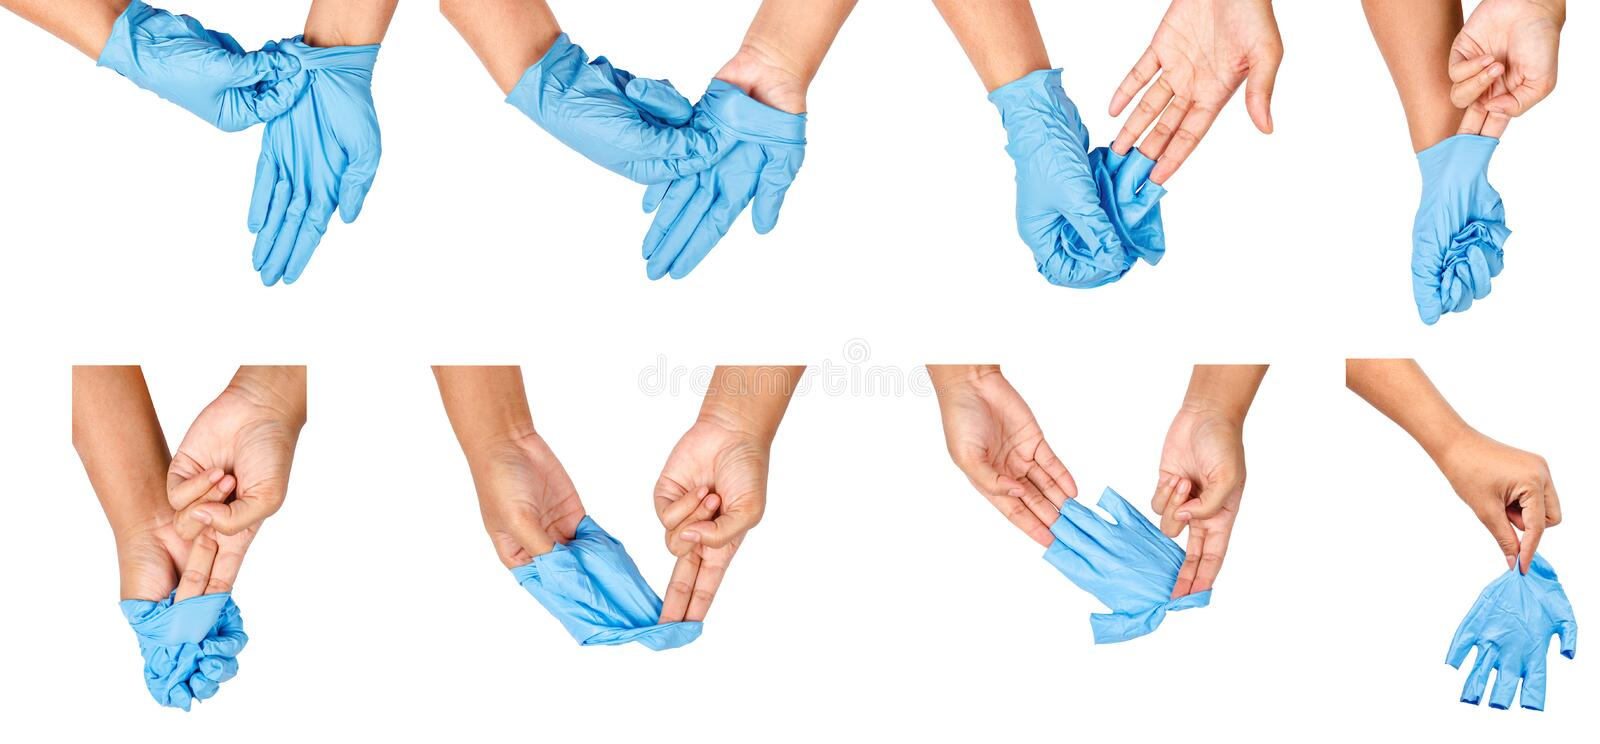 Step of hand throwing away blue disposable gloves. royalty free stock images